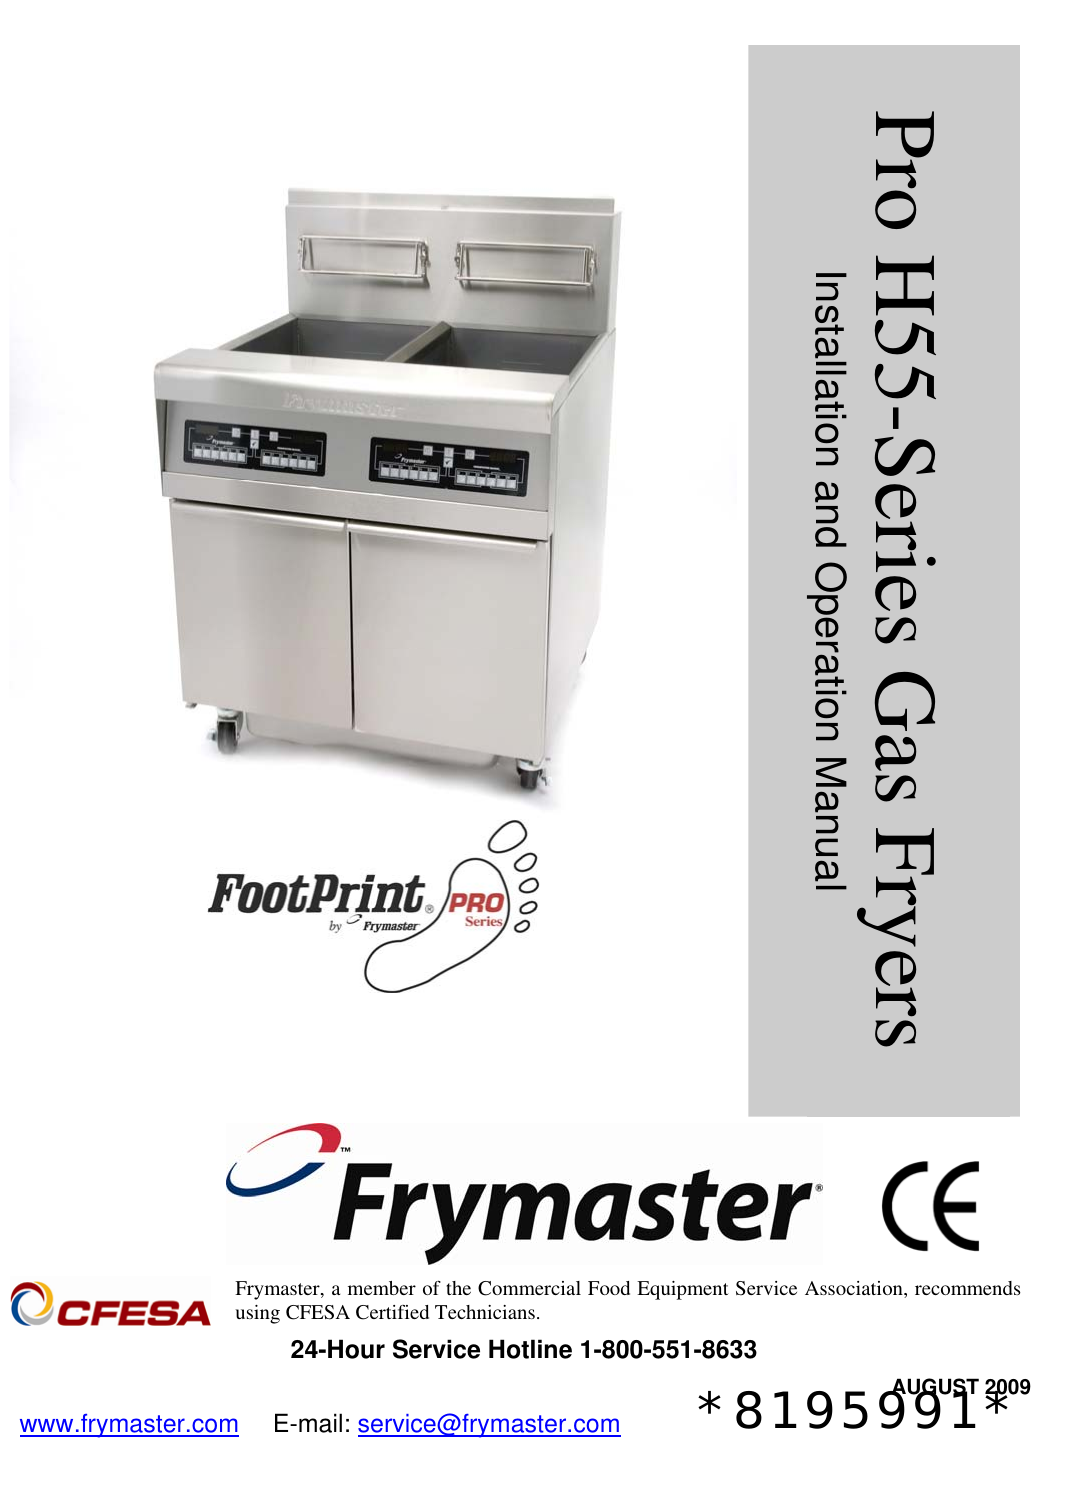 frymaster pro h55 users manual series gas io cover front